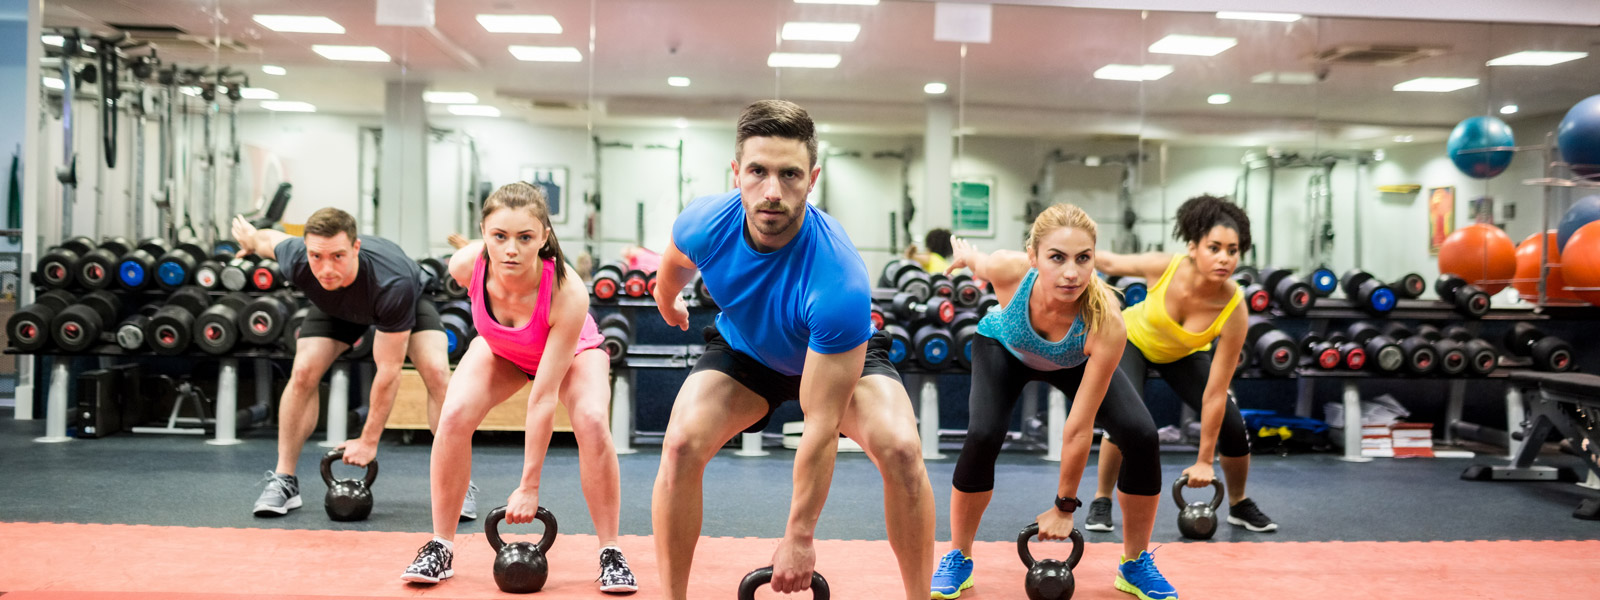 Group fitness schedules island gym